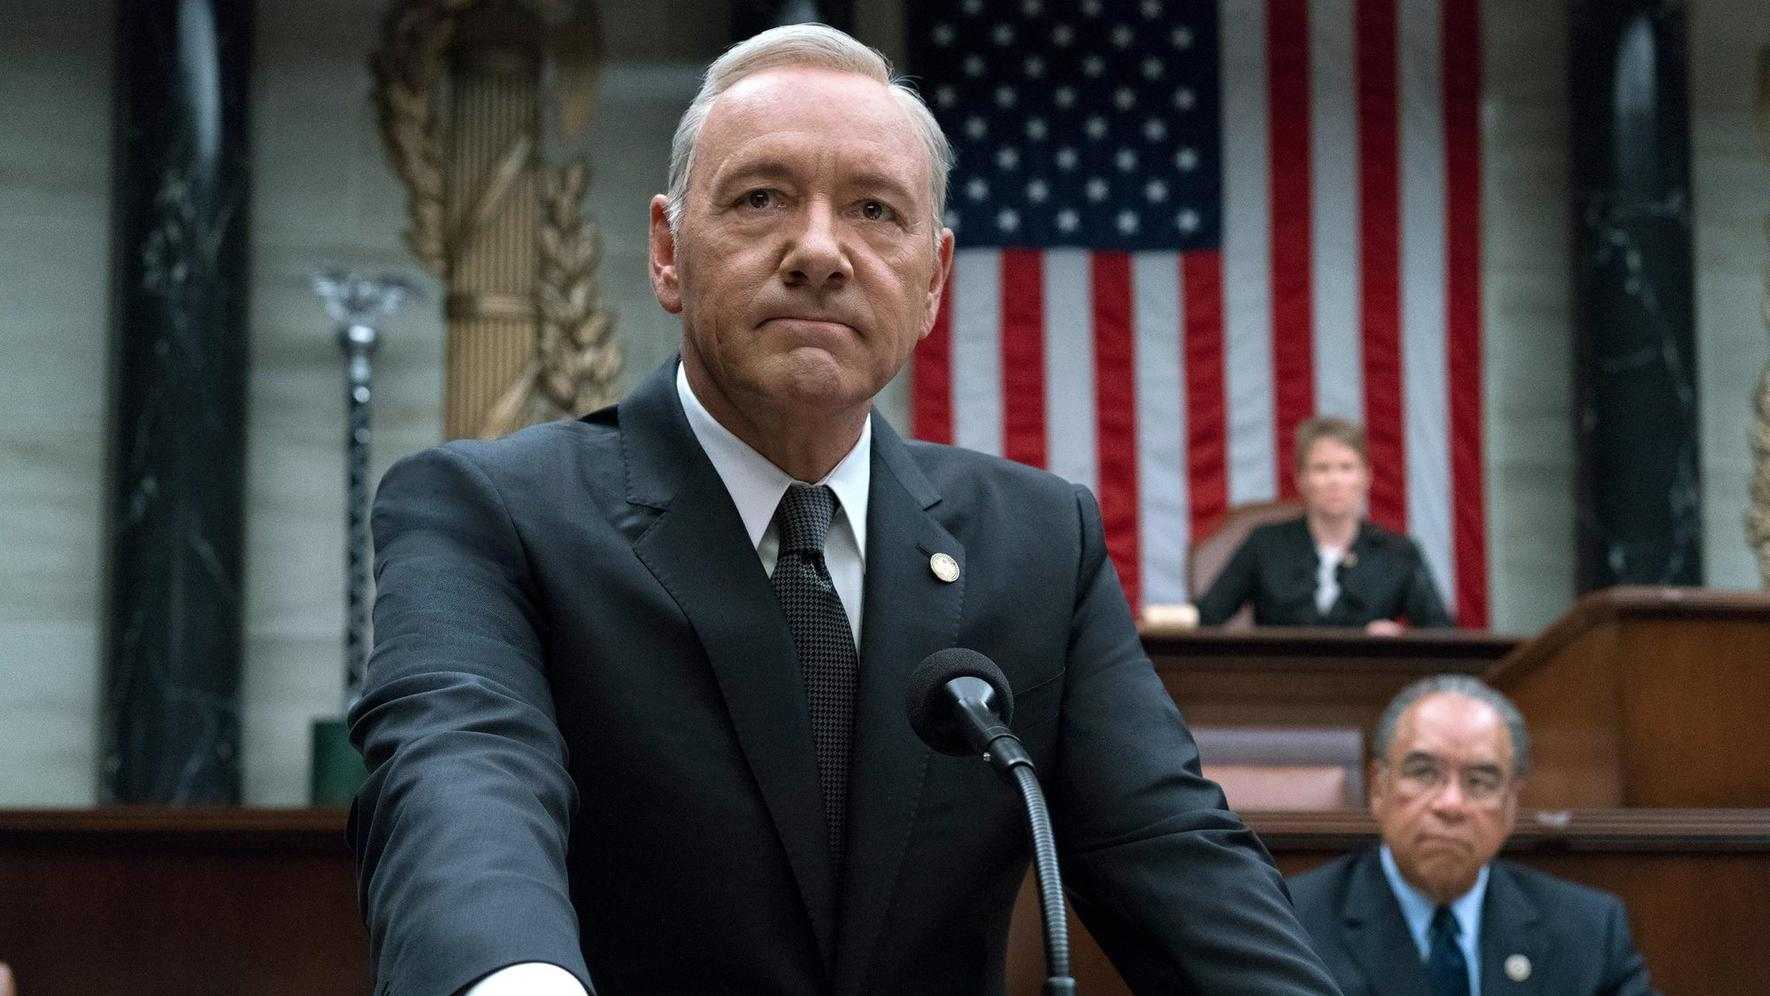 Kevin Spacey als Präsident Underwood in House of Cards